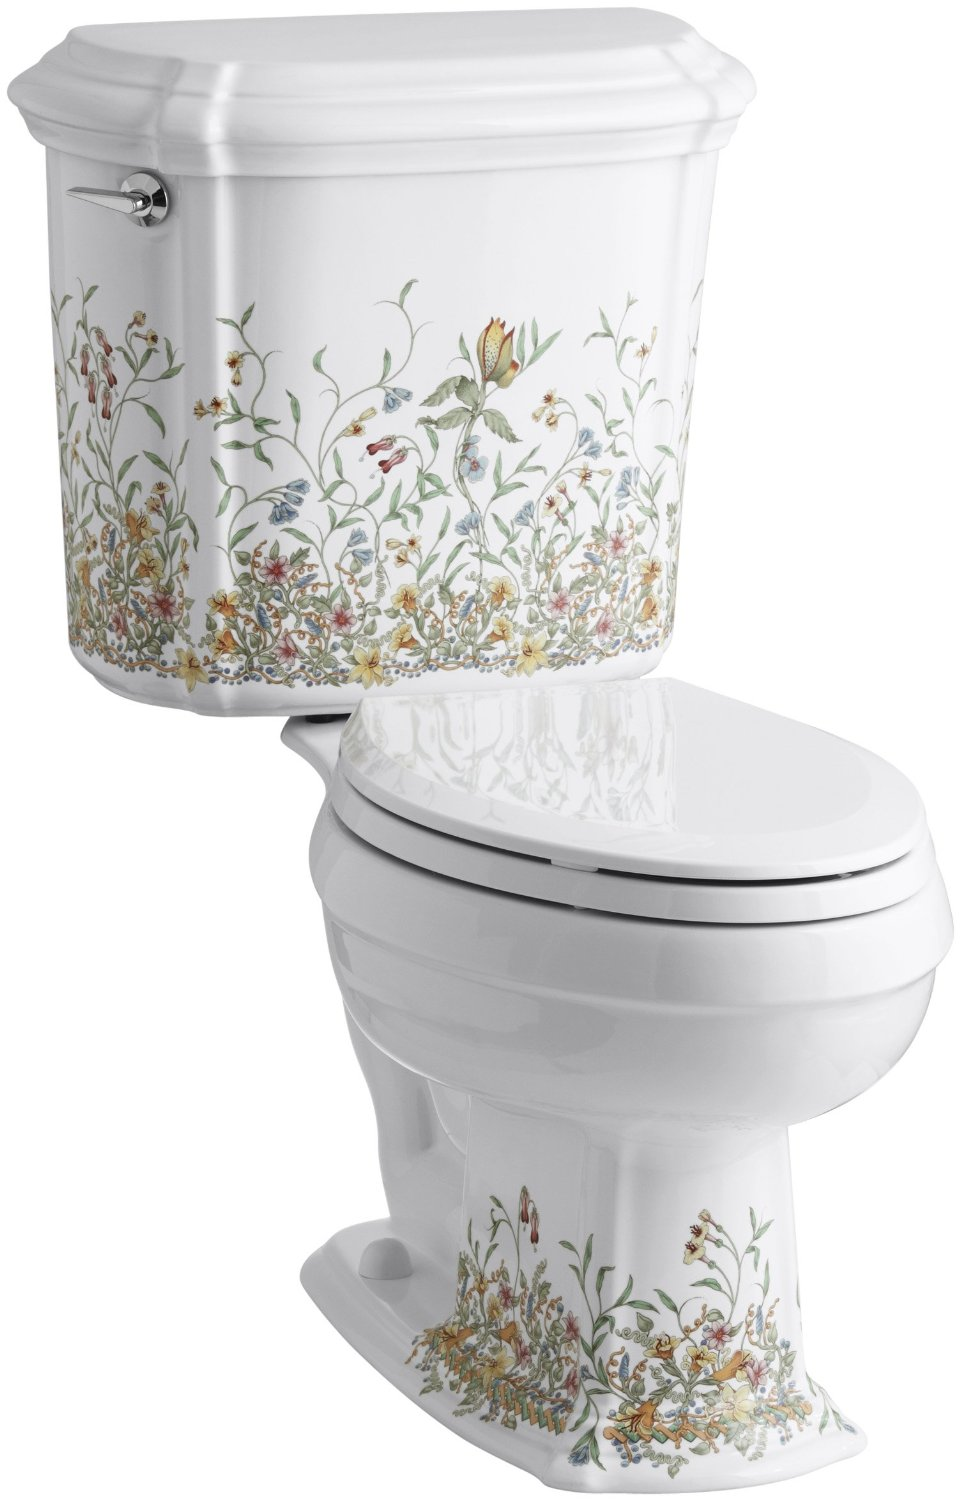 Best toilet on the market reviews - Kohler English Trellis Design Toilet Review